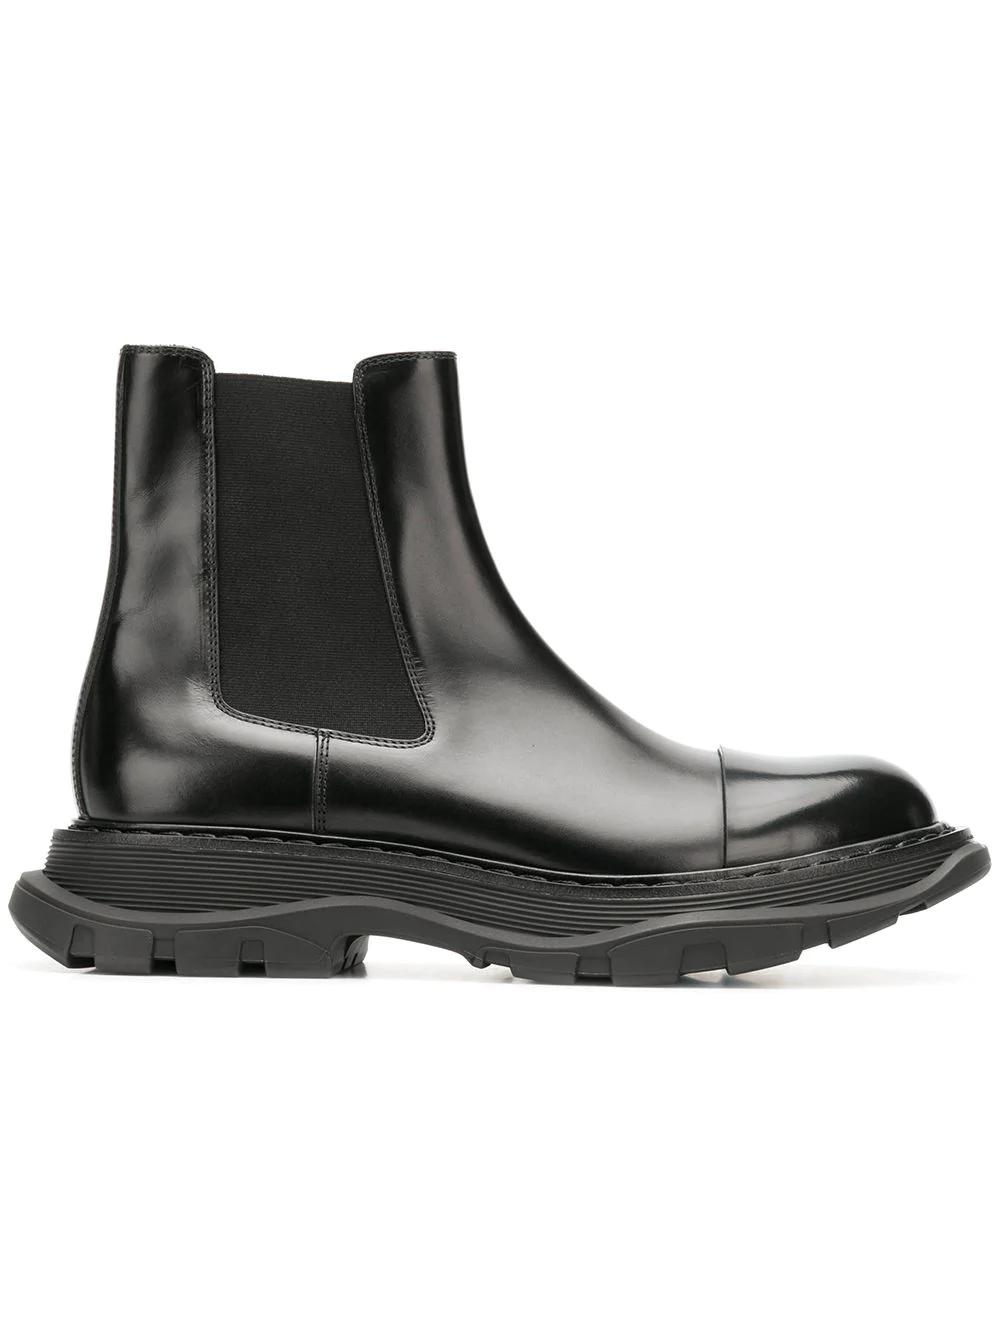 d5b1cc27d1e4 Alexander Mcqueen Tread Black Leather Chelsea Boots